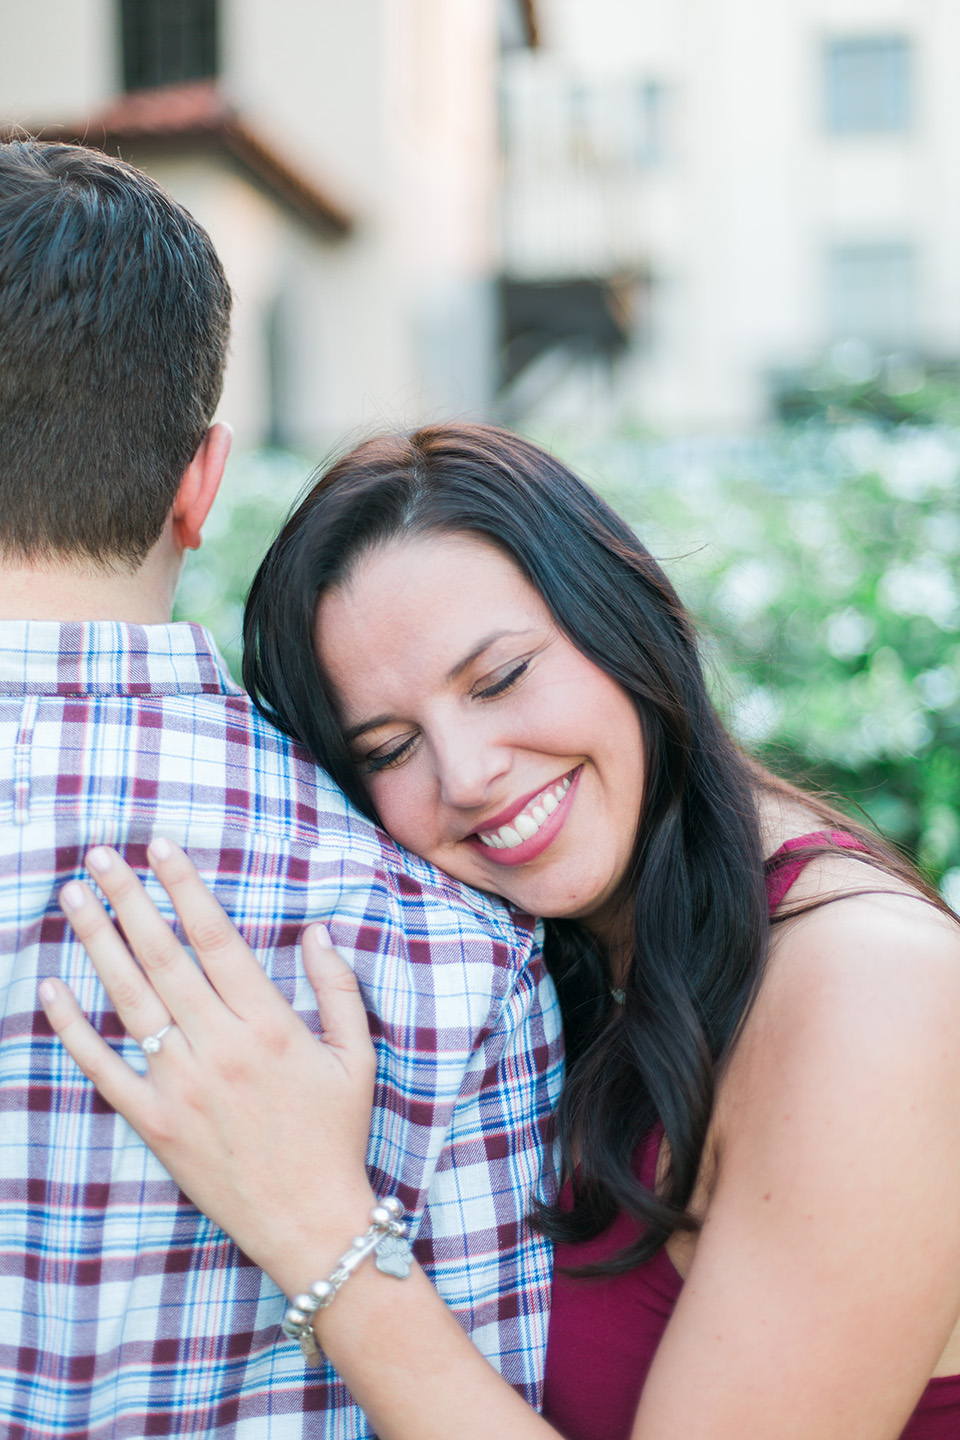 Image of an engaged couple in downtown Orlando, Florida.  The woman is closing her eyes and resting her head on her fiance's shoulder.  You can see her engagement ring on her left ring finger.